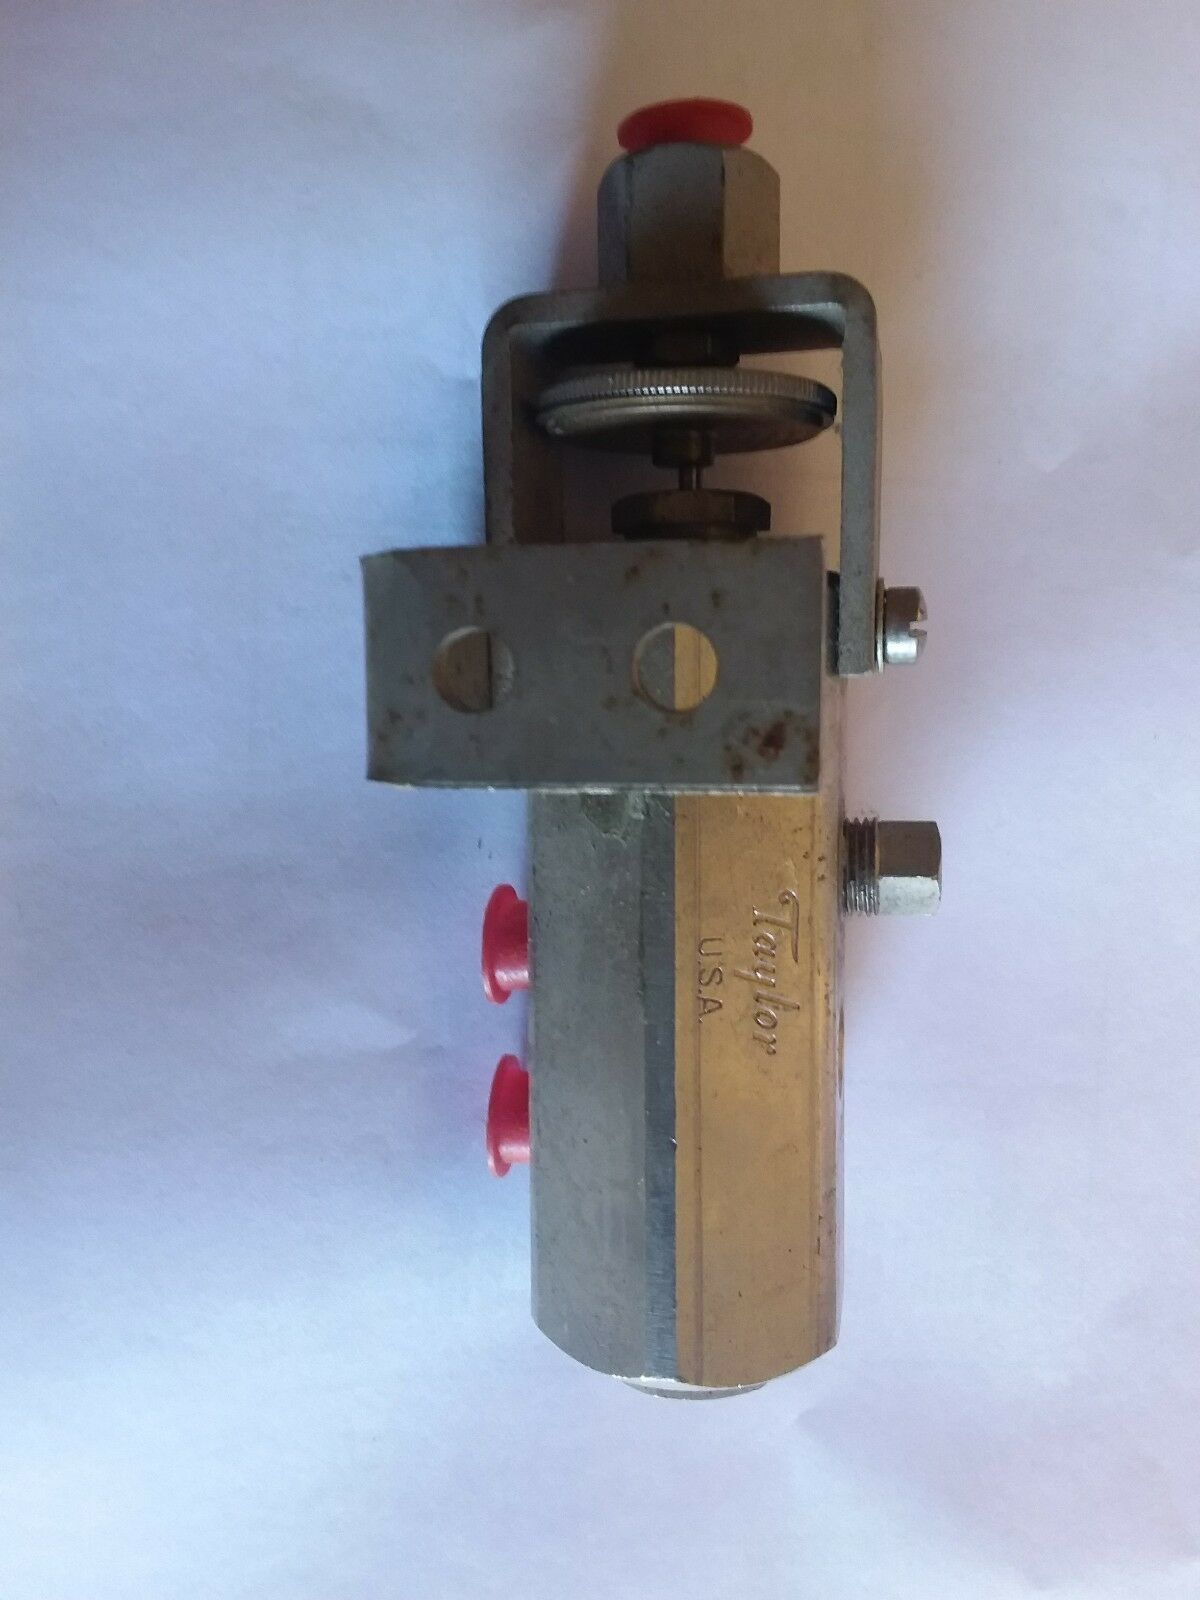 Taylor Insruments Plunger Type 3way Pilot Valve Fixed Adjustment 88s52 88s150 Getinge a4